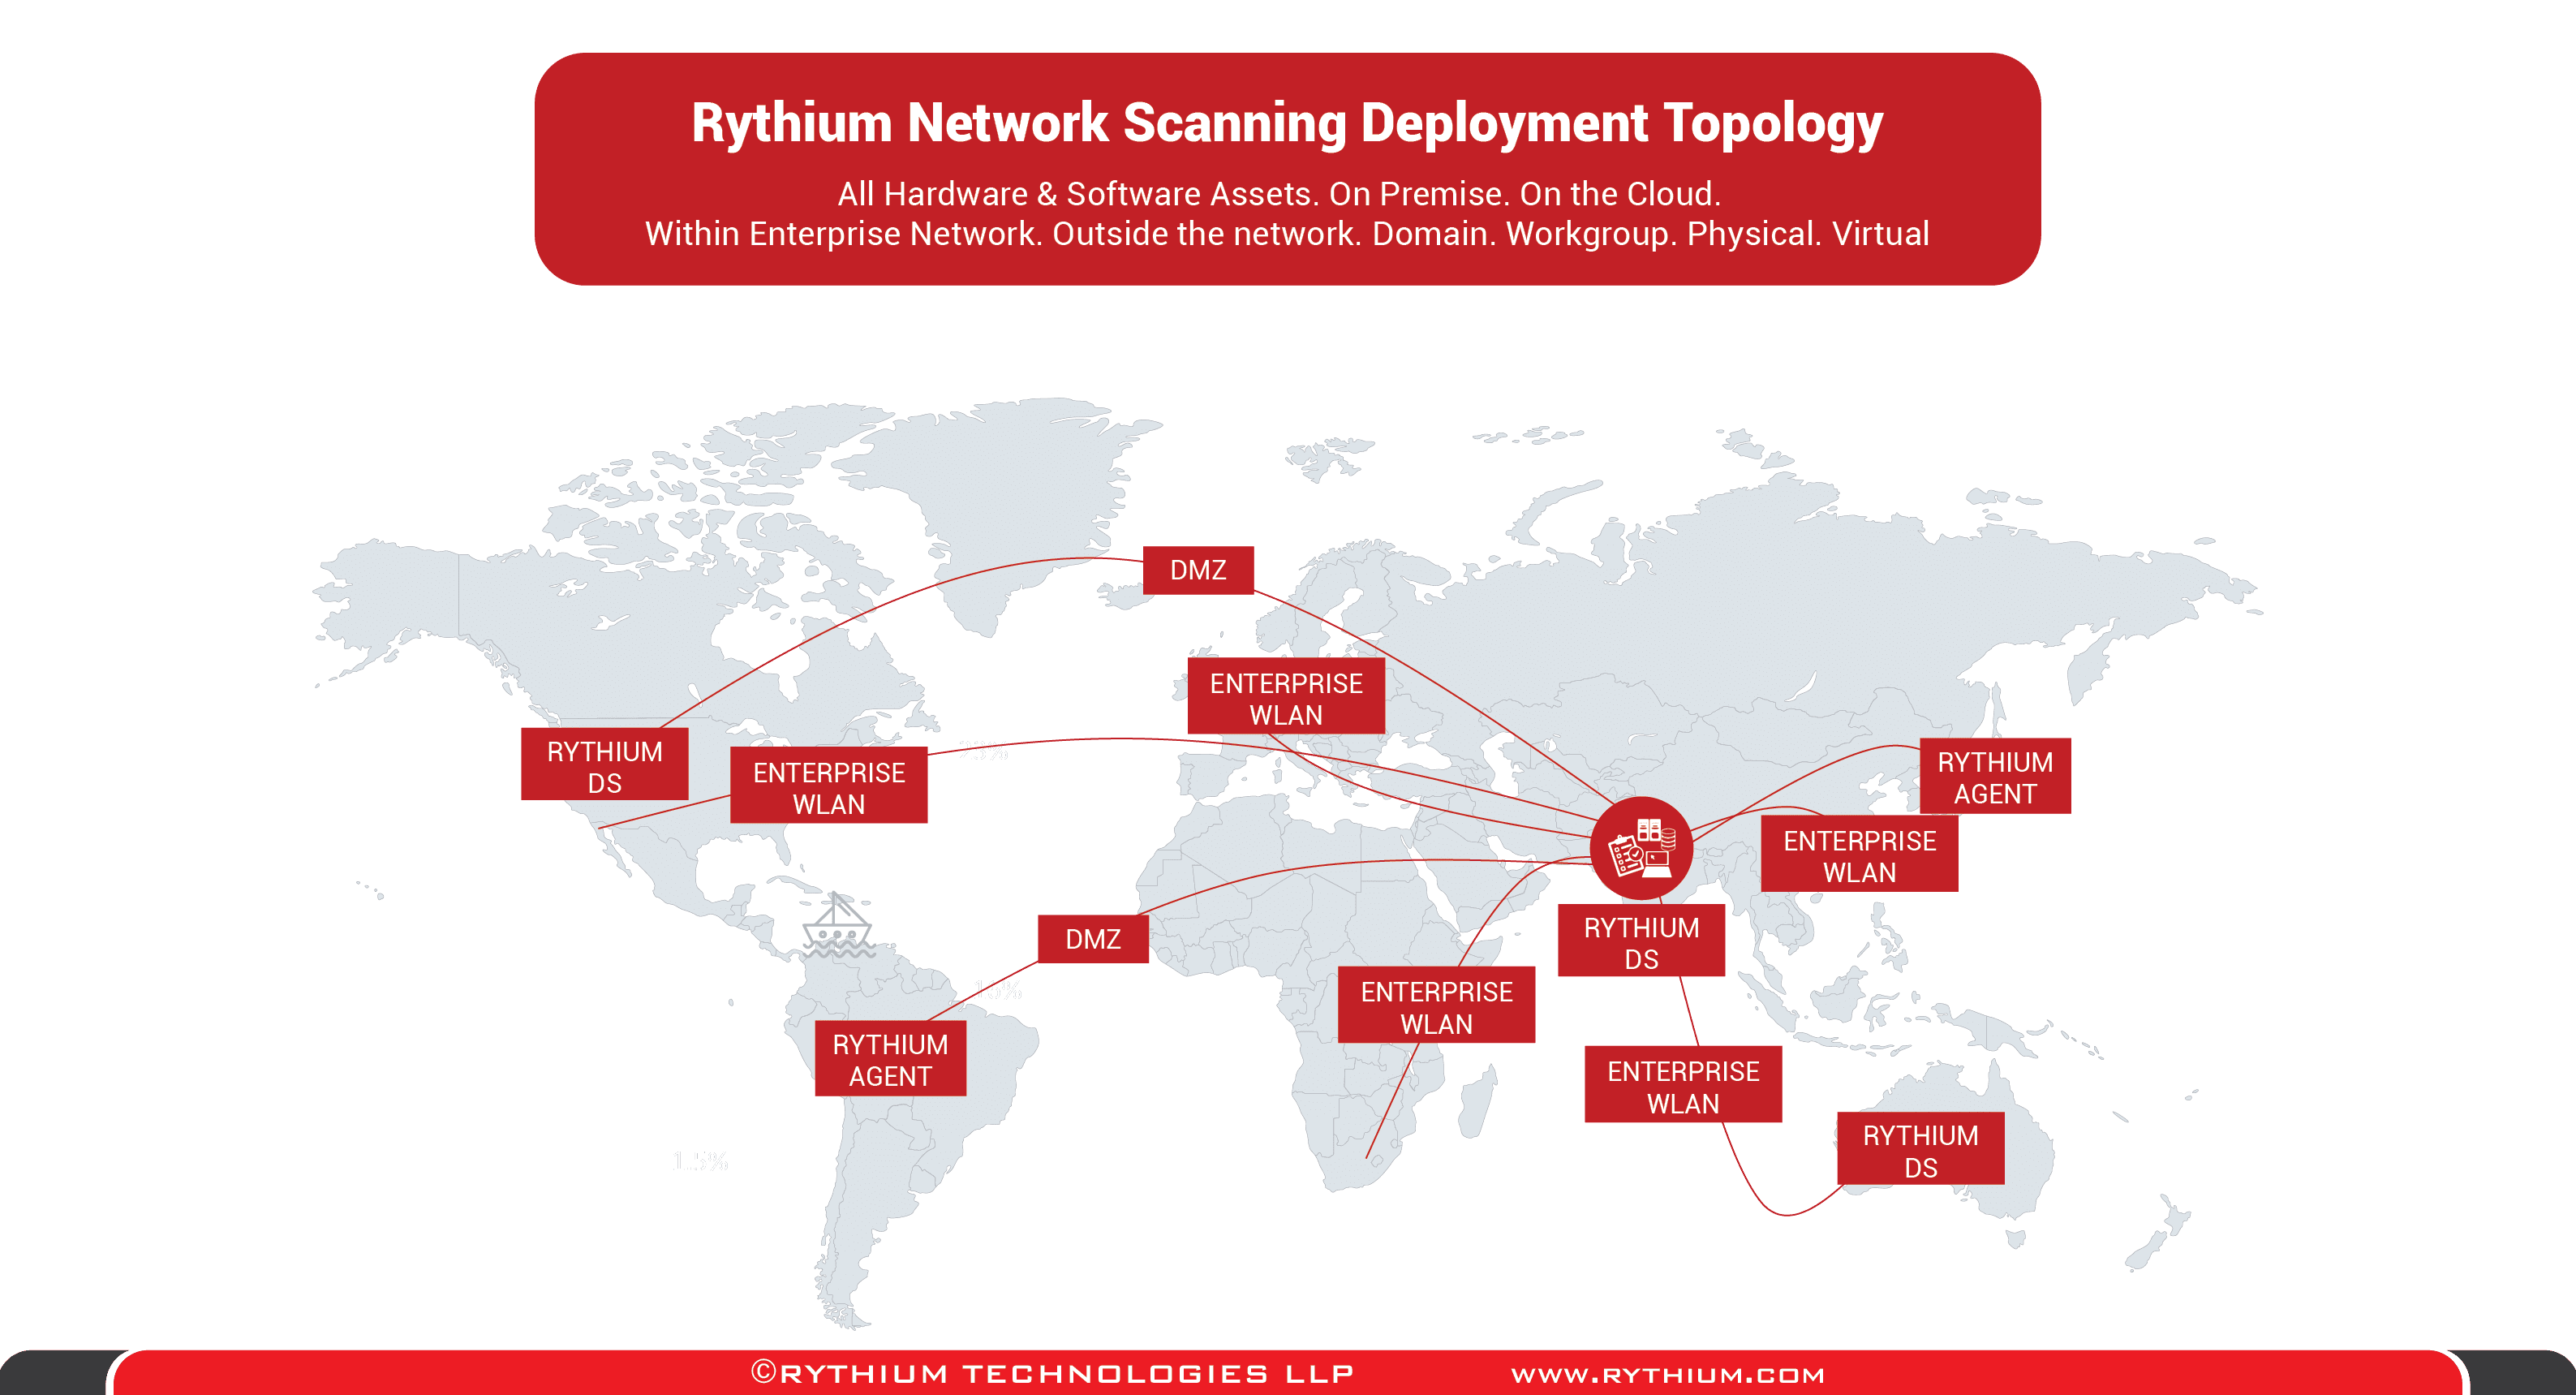 Rythium Global IT Asset Software Discovery